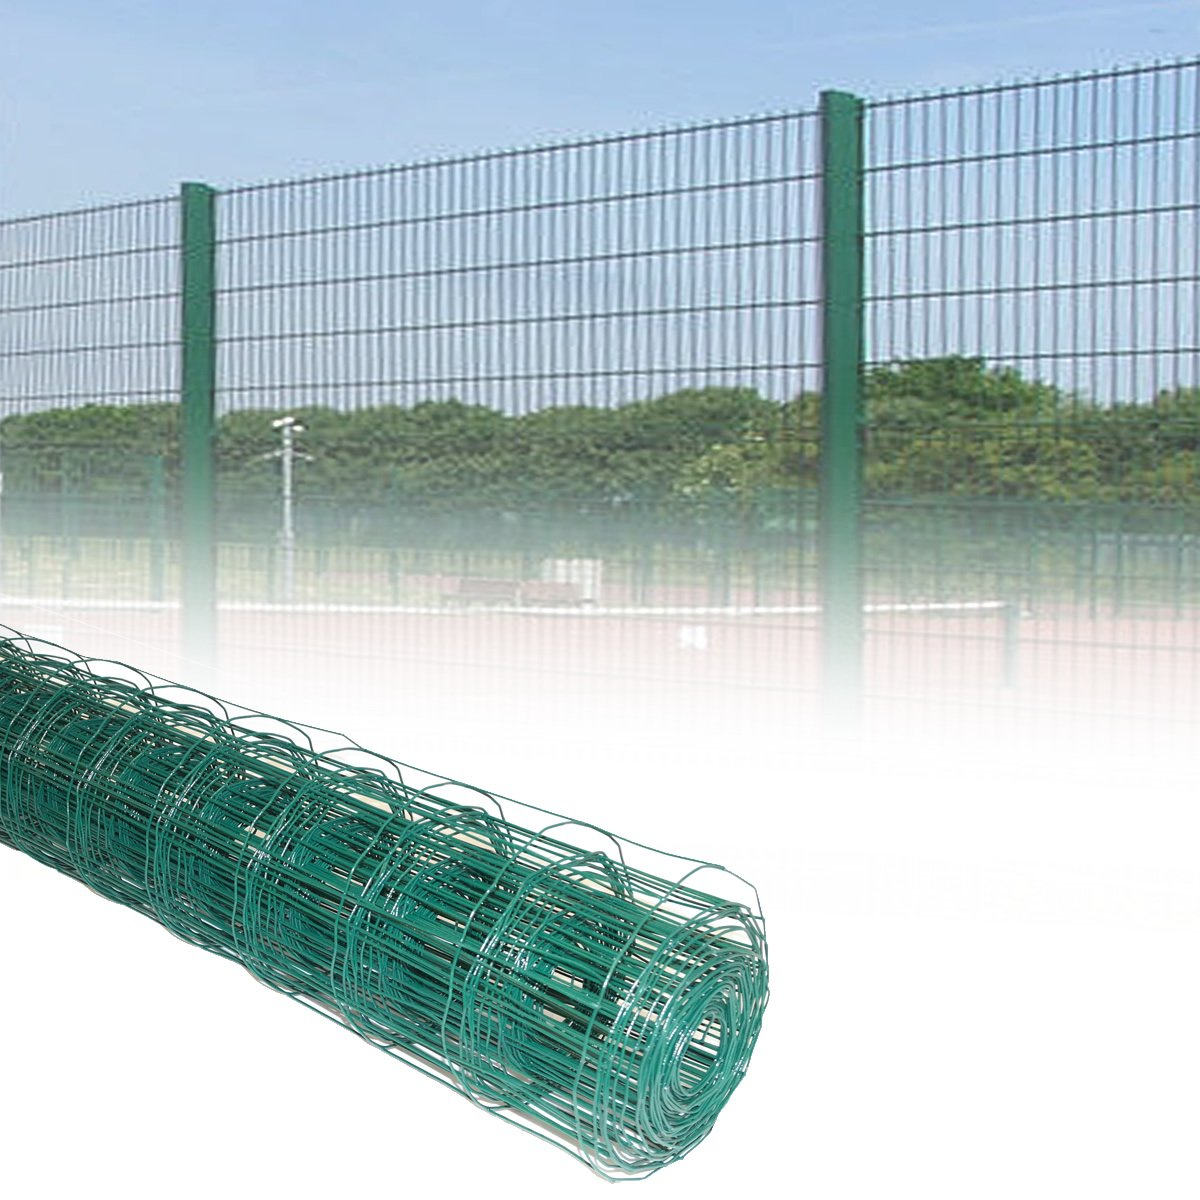 20M x 0.6M Rolls Green PVC Coated Steel Mesh Fencing Wire Garden ...